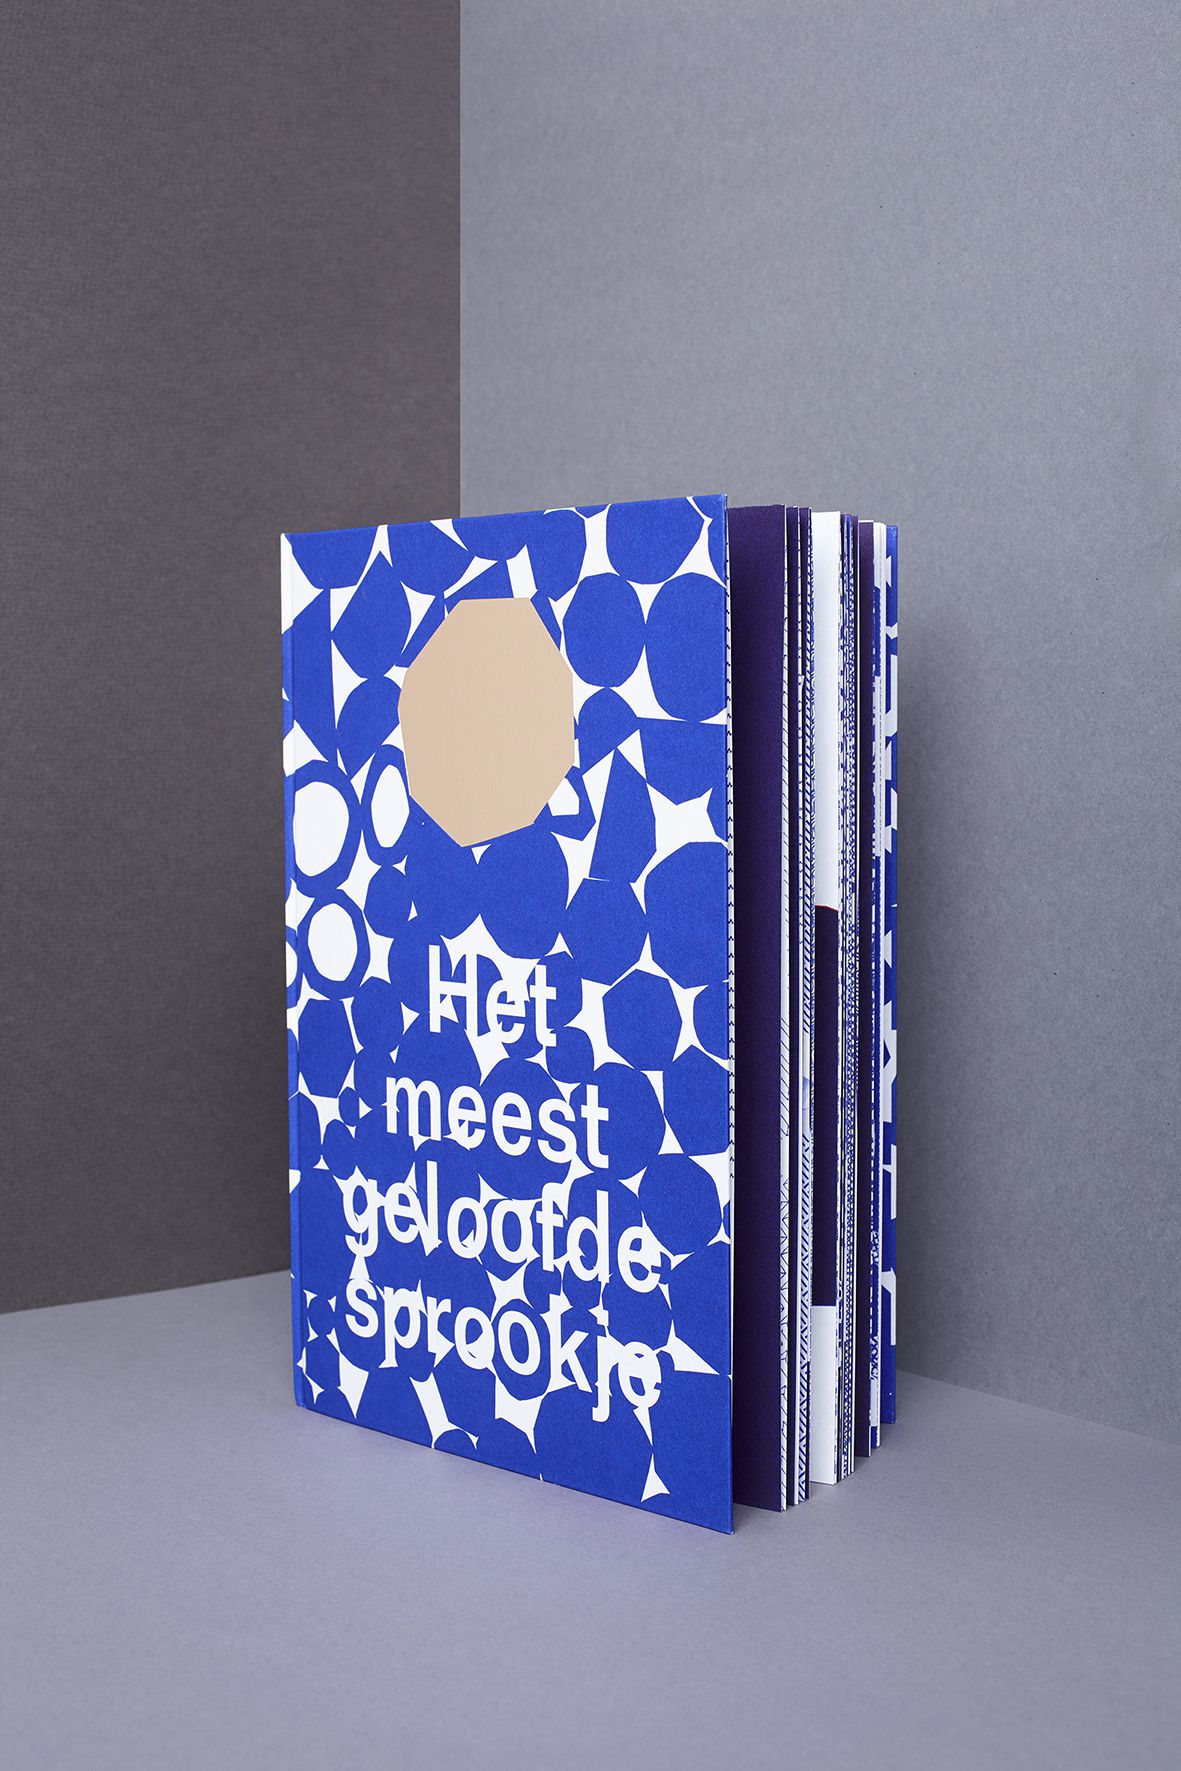 best verzorgde boeken schönste bucher aus der welt stedelijk museum het meest geloofde sprookje, graphic design studio de vormforensen by annelou van Griensven Anne-Marie Geurink and Lyanne Tonk Bookdesign Arnhem graphic anthropology fotografie: Michiel Spijkers